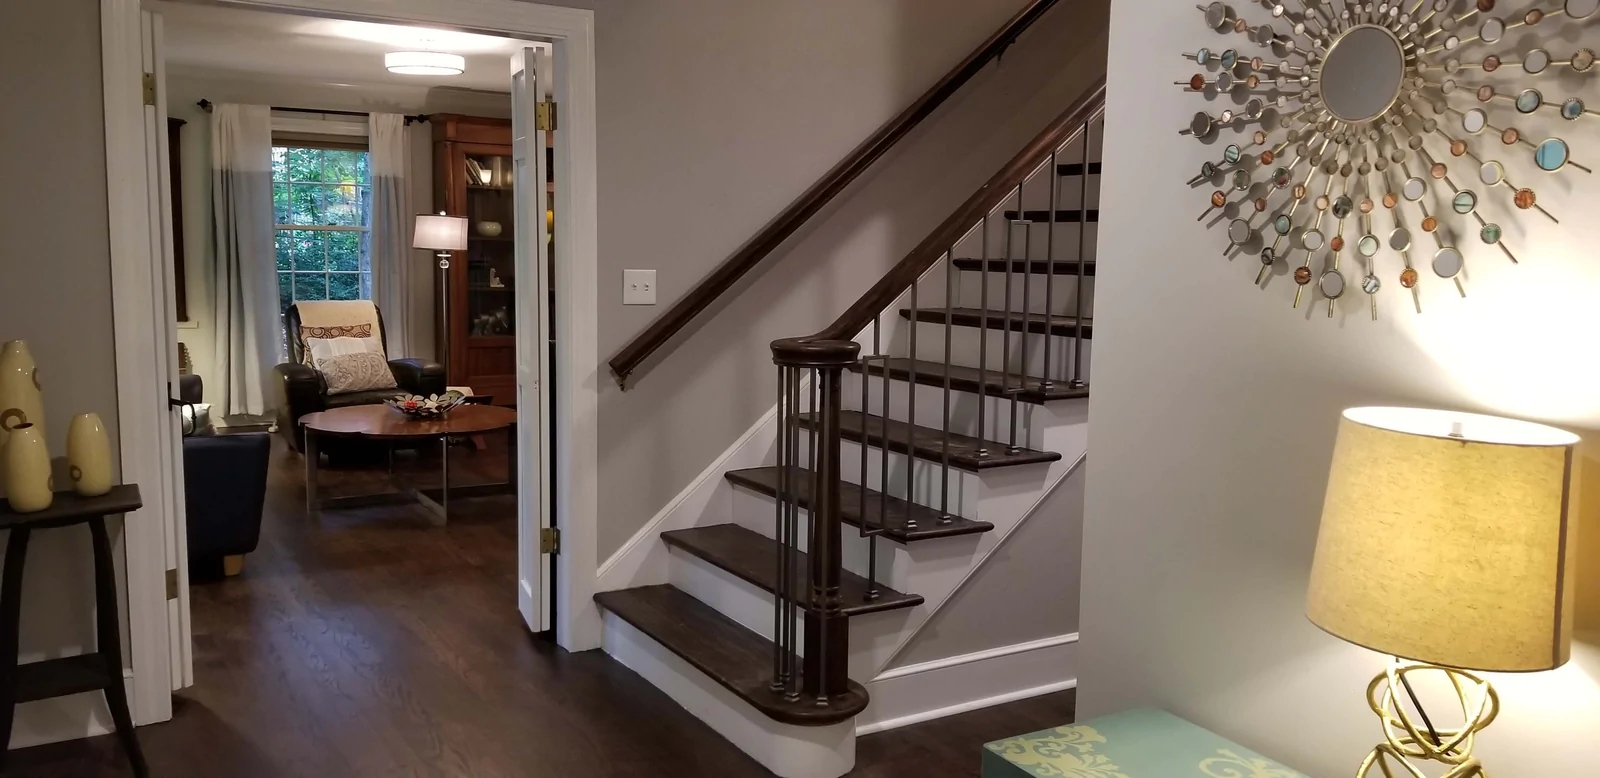 Stair Parts Usa Stair Supplies Staircase Parts Stairpartsusa Com | New Handrail For Stairs | Replacement | Split Level Foyer | Enclosed Staircase | Inside | Split Entry